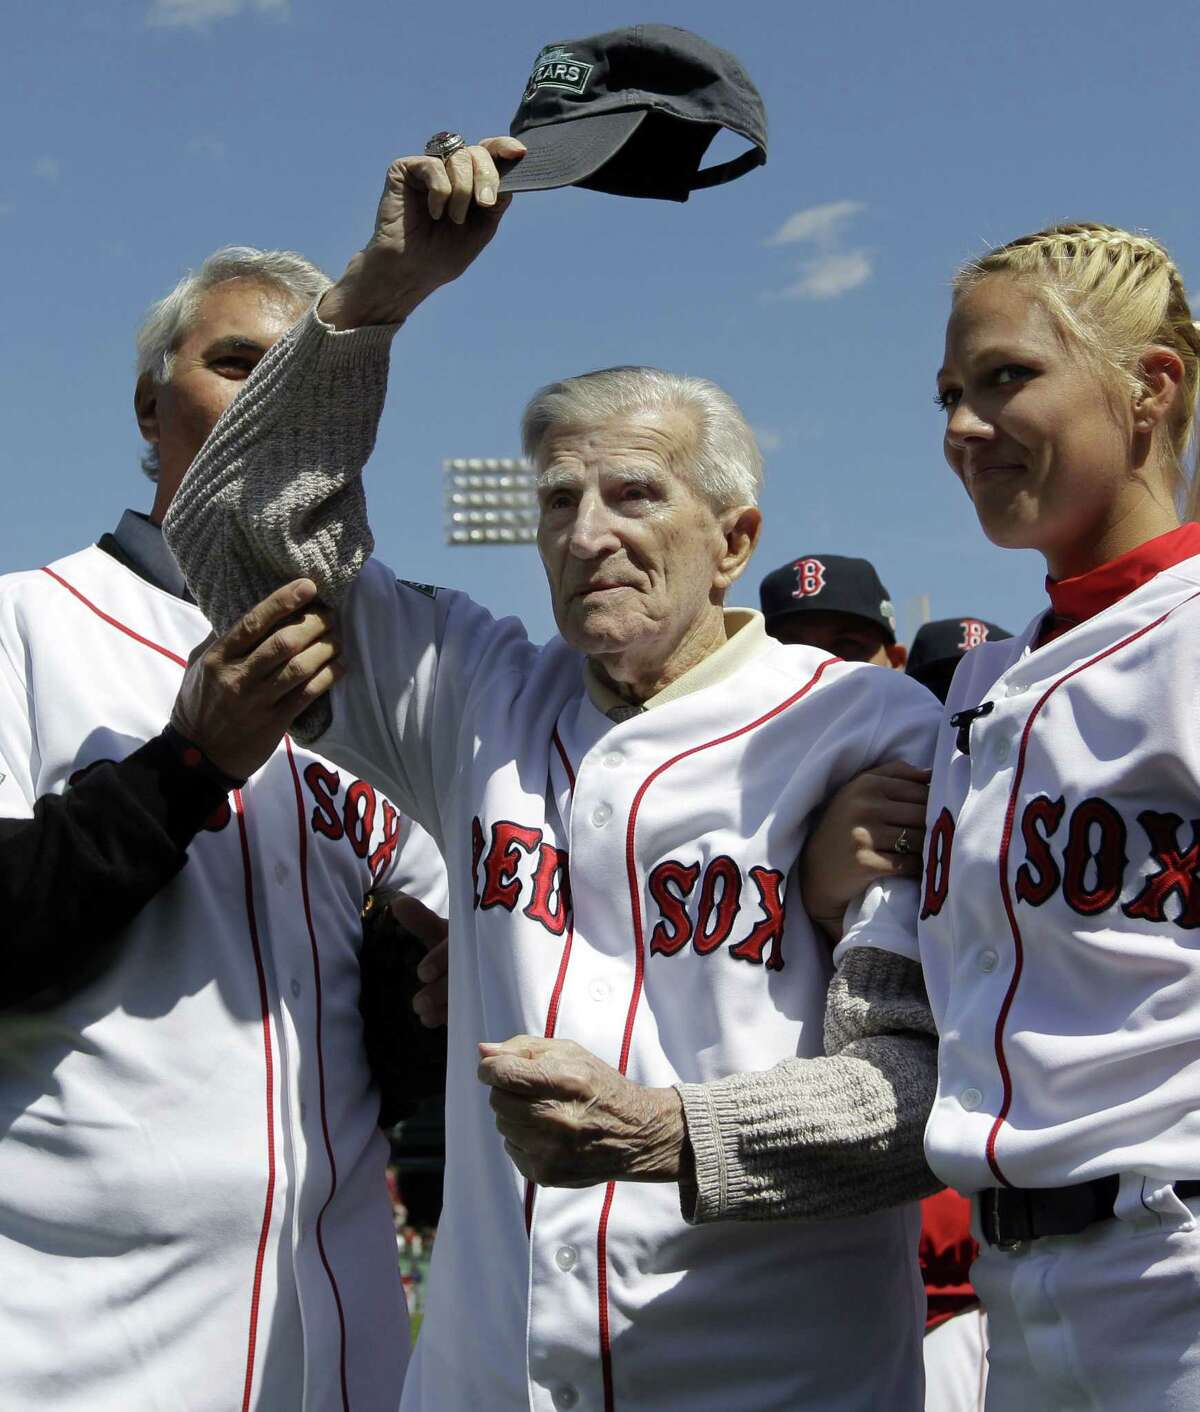 In this April 13, 2012 photo, Boston Red Sox great Johnny Pesky tips his cap to the fans prior to Boston's home opener baseball game against the Tampa Bay Rays at Fenway Park in Boston. Pesky died in Danvers, Mass. at 92.